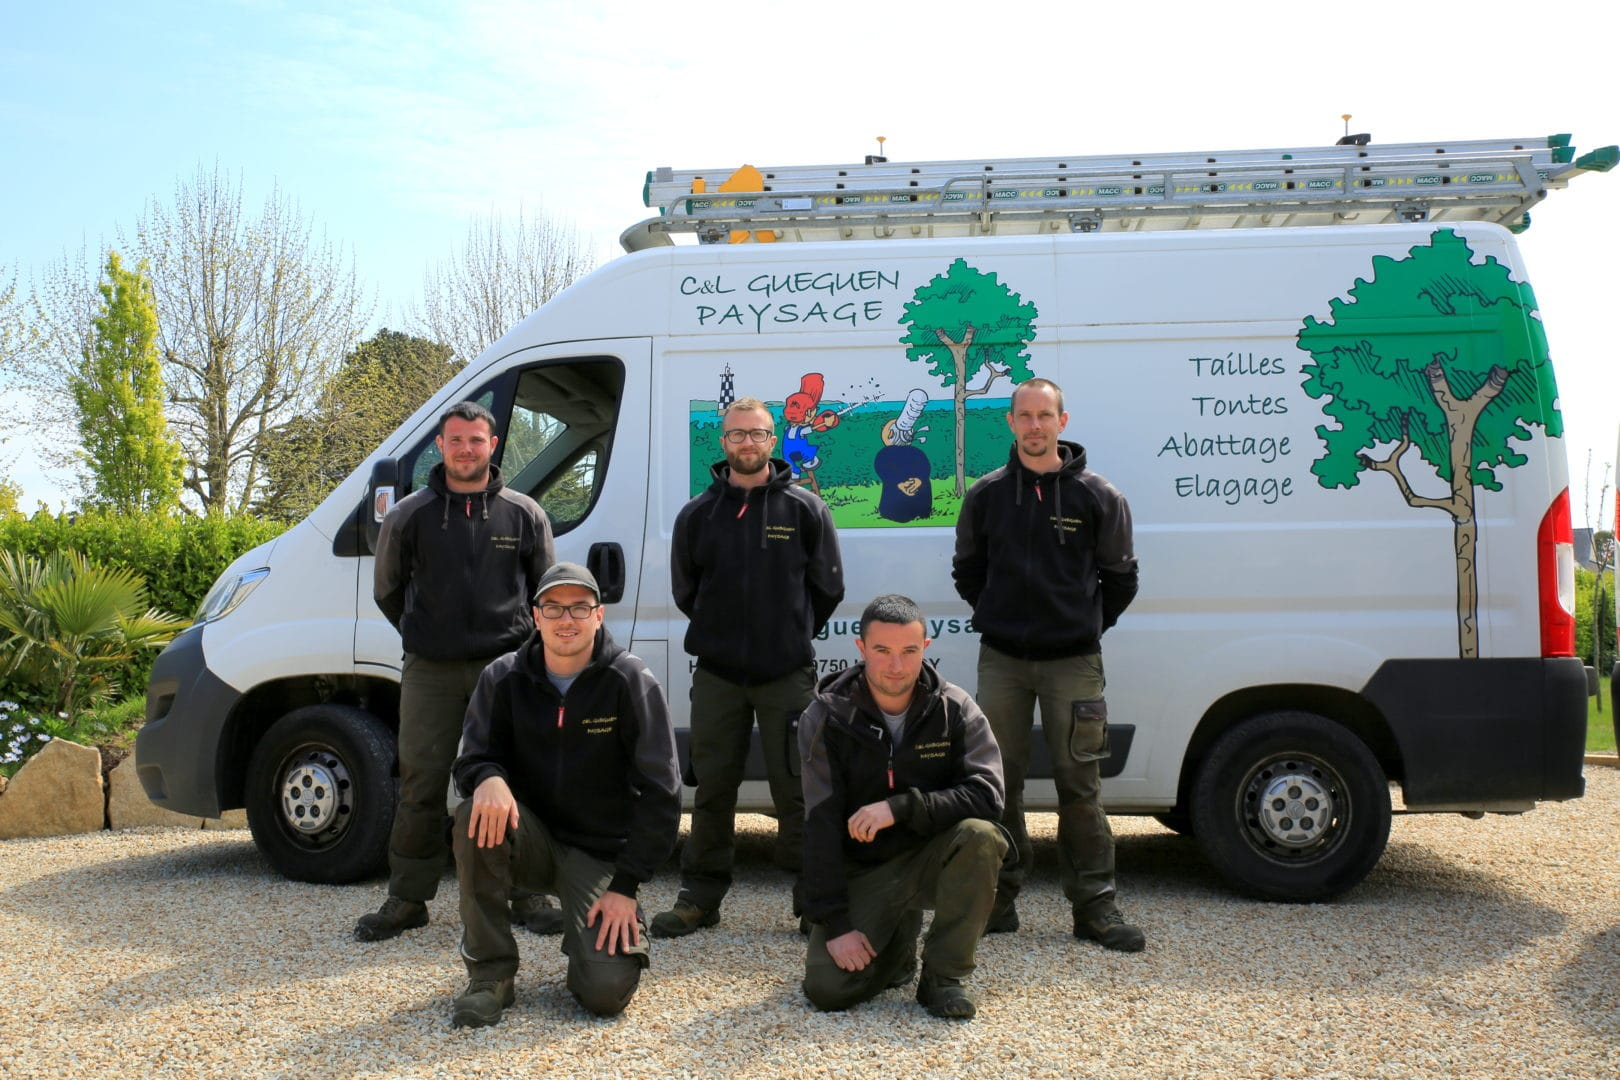 equipe taille tonte abattage elagage gueguen paysagiste - Accueil